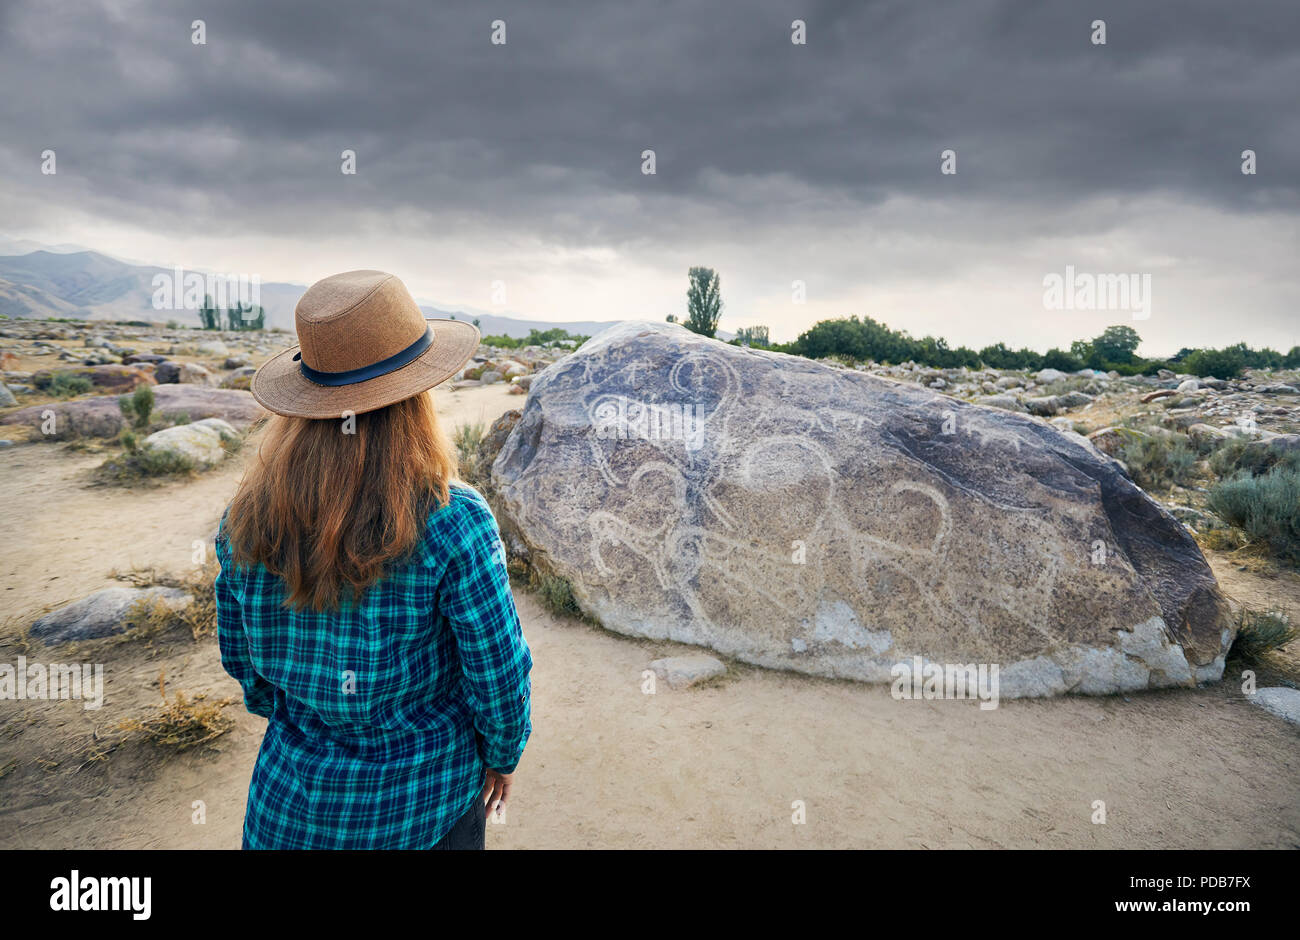 Woman in Hat in blue shirt in the open air museum near stone with ancient petroglyph of goats at Kyrgyzstan. Culture Heritage Museum. - Stock Image